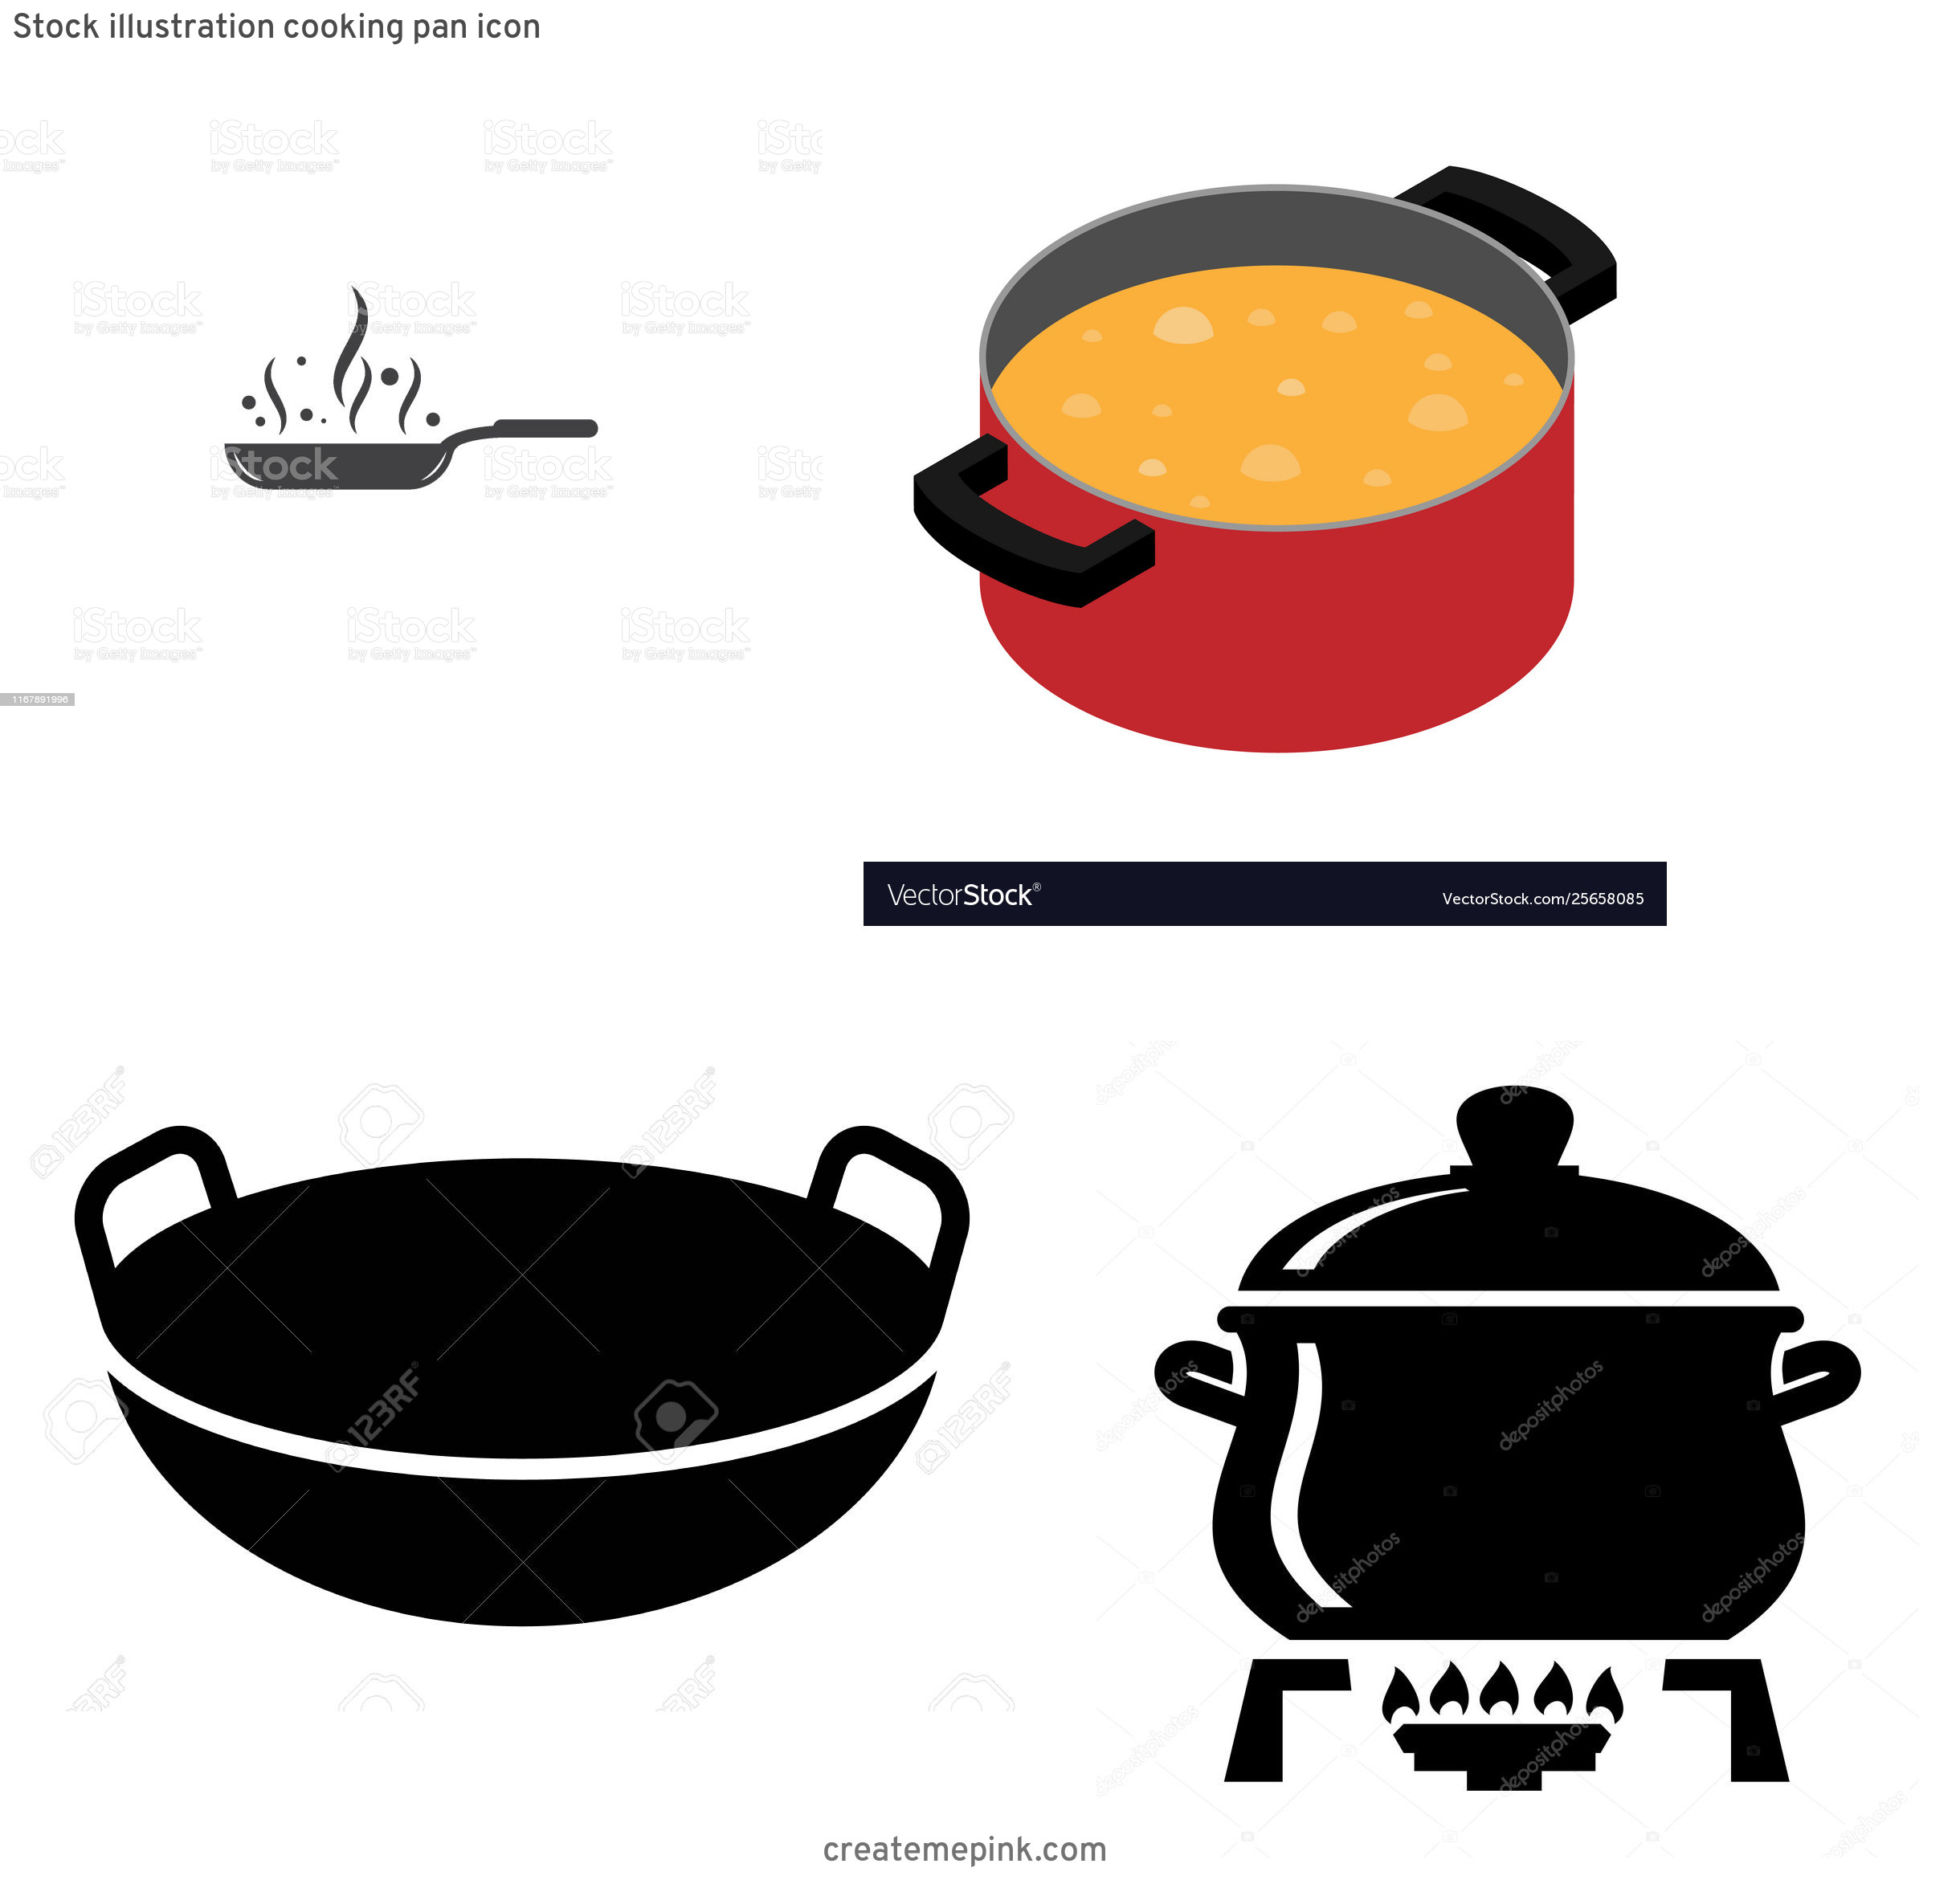 Cook Pot Vector: Stock Illustration Cooking Pan Icon